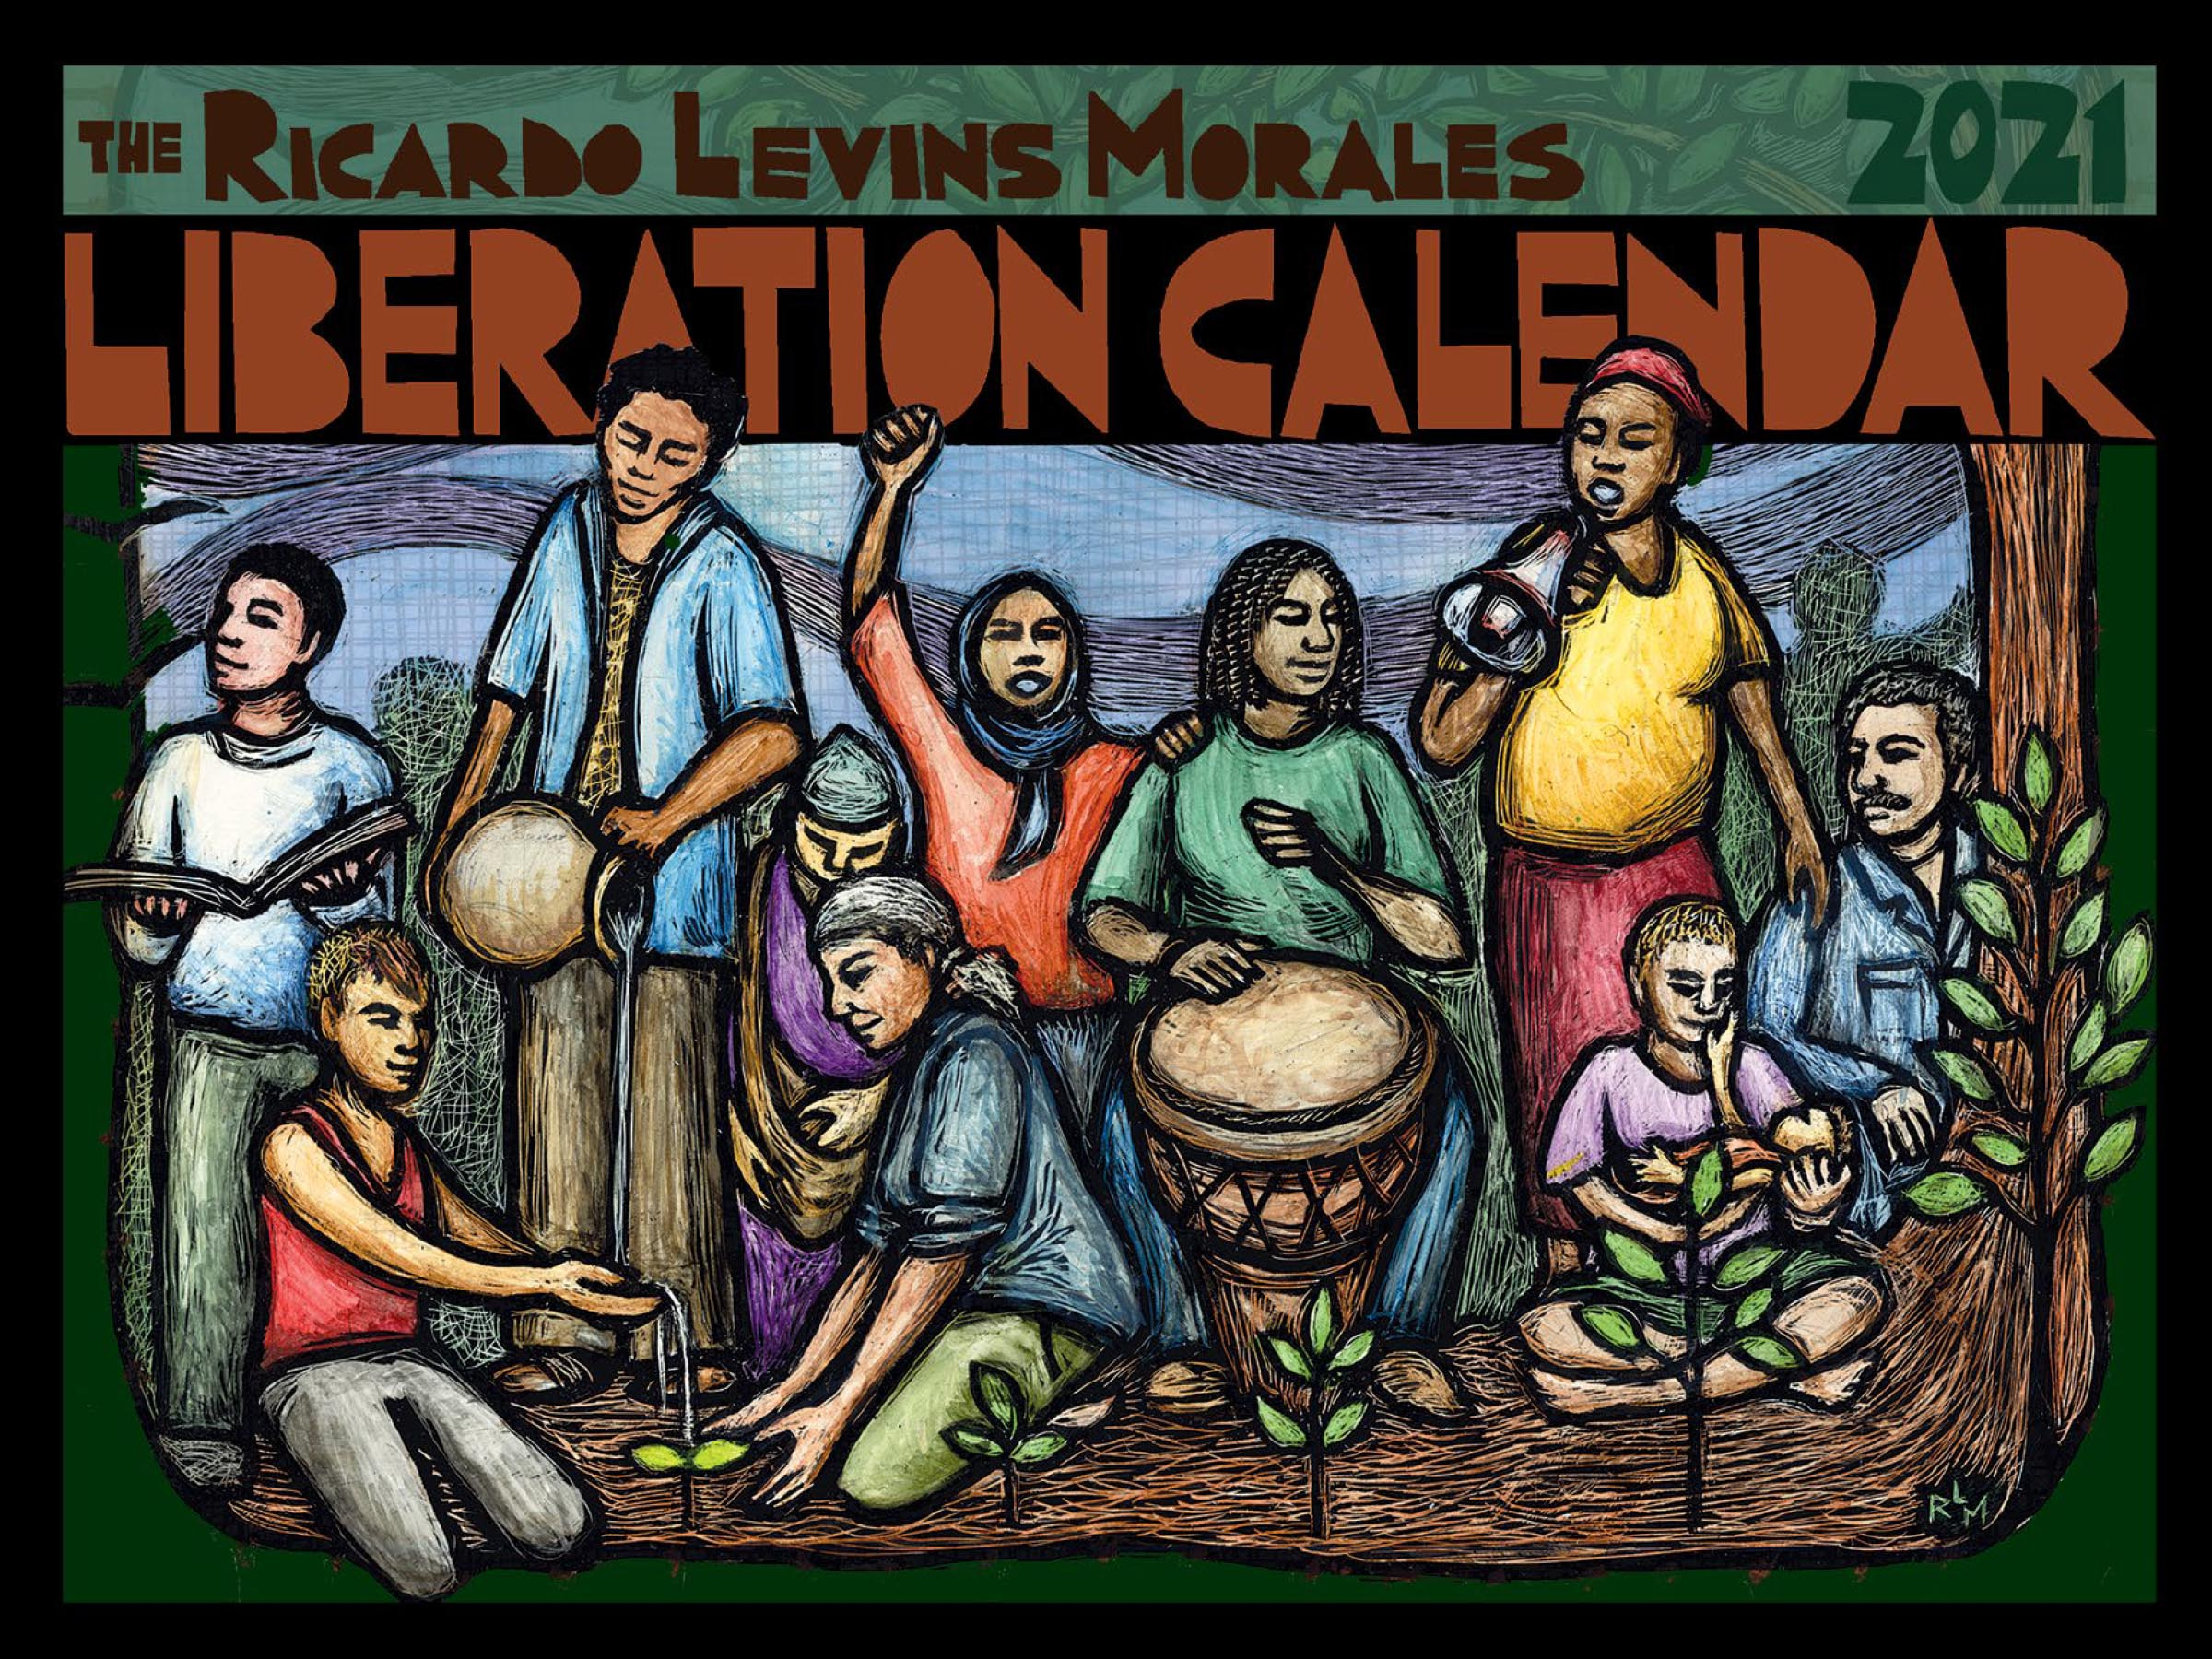 Ricardo Levins Morales 2021 Liberation Calendar cover. People of many ages, genders and skin colors gather at the base of a tree. Some weater, others plant seedlings, one plays a drum, one holds a baby and another a book, while another speaks into a megaphone and another wearing a headscarf raises her fist in the air.